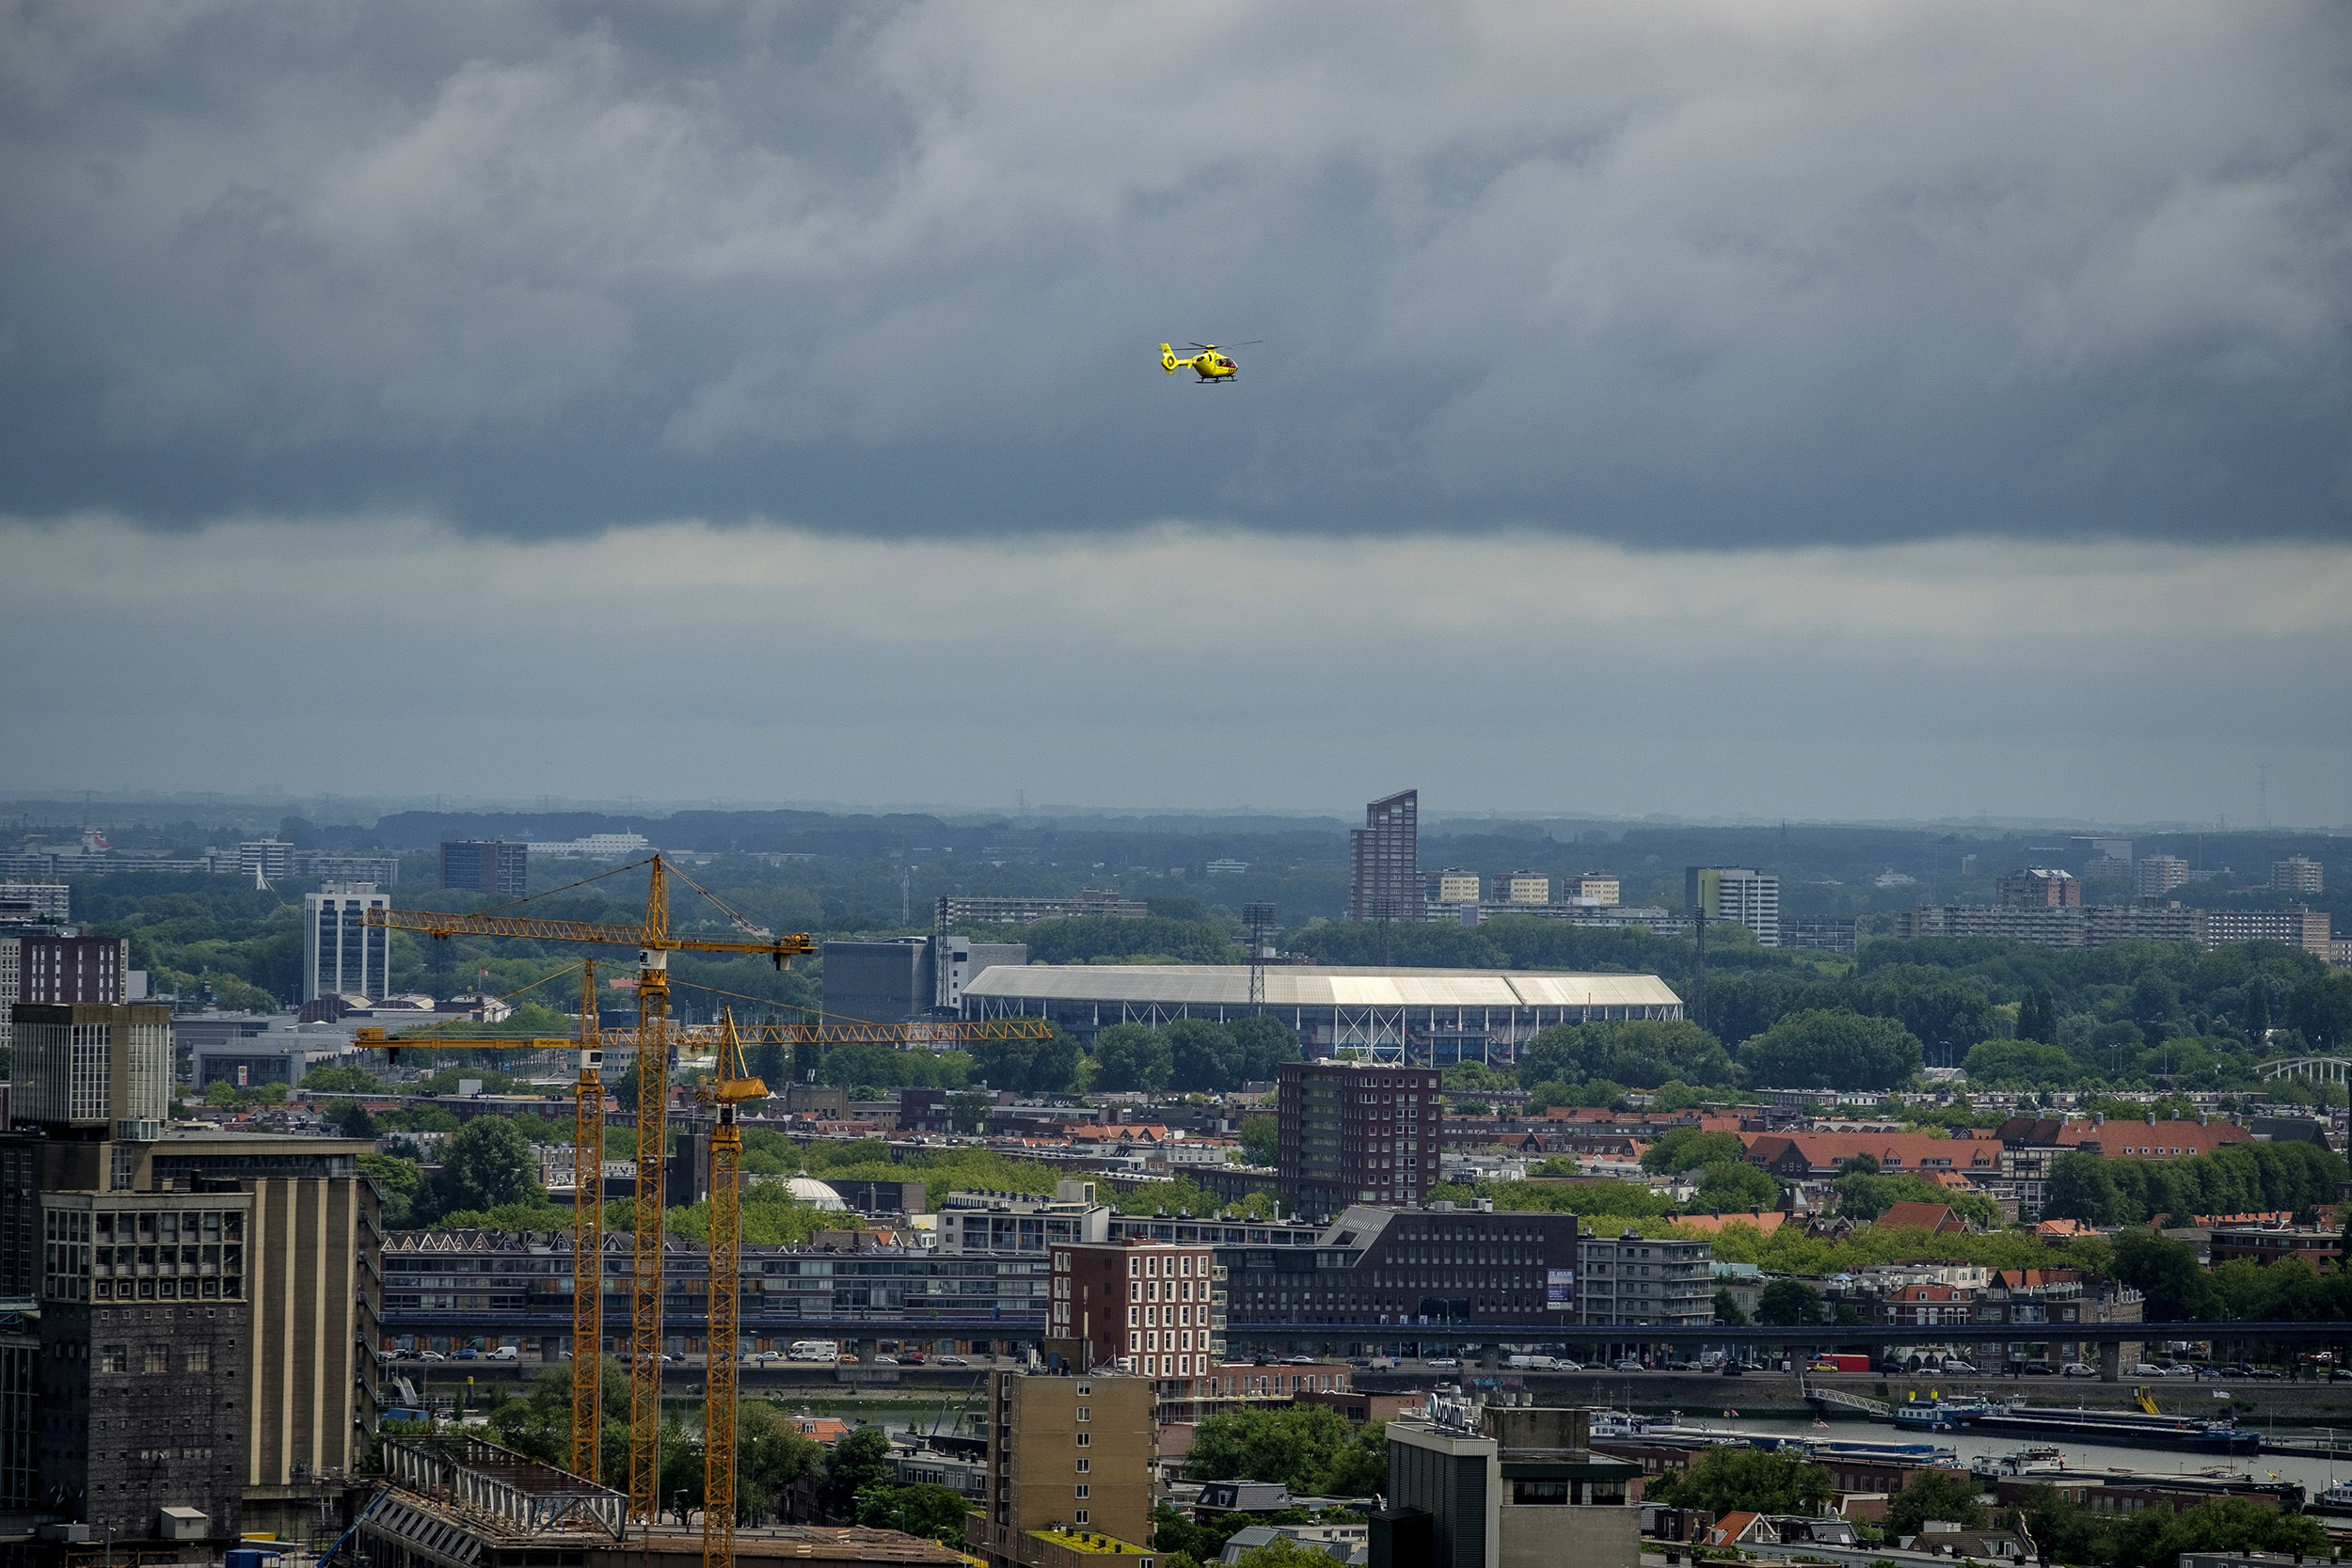 Rotterdam traumahelicopter traumaheli Kuip